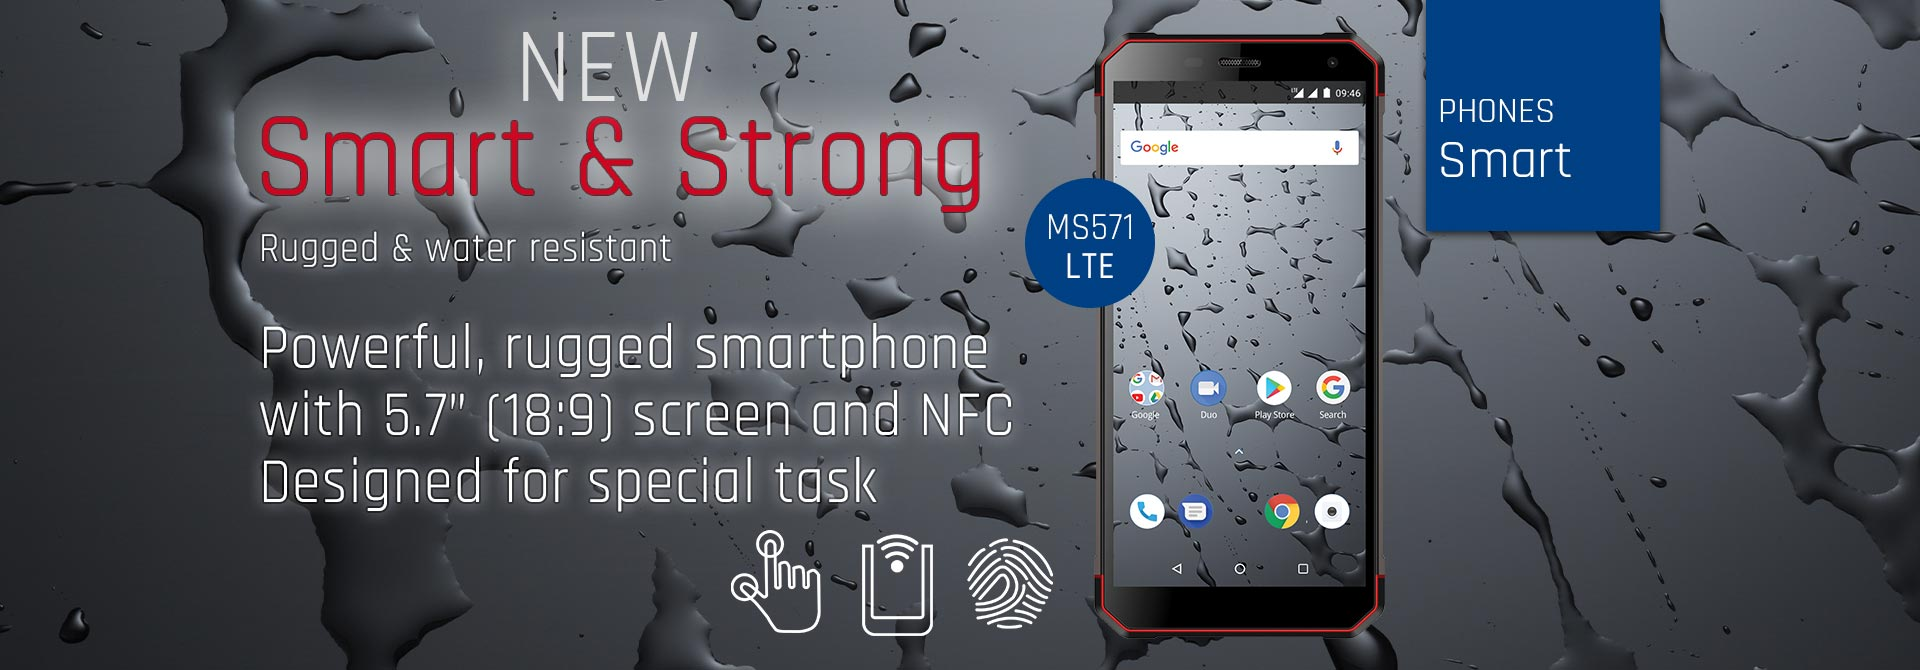 Novo Smart & Strong MS571 LTE